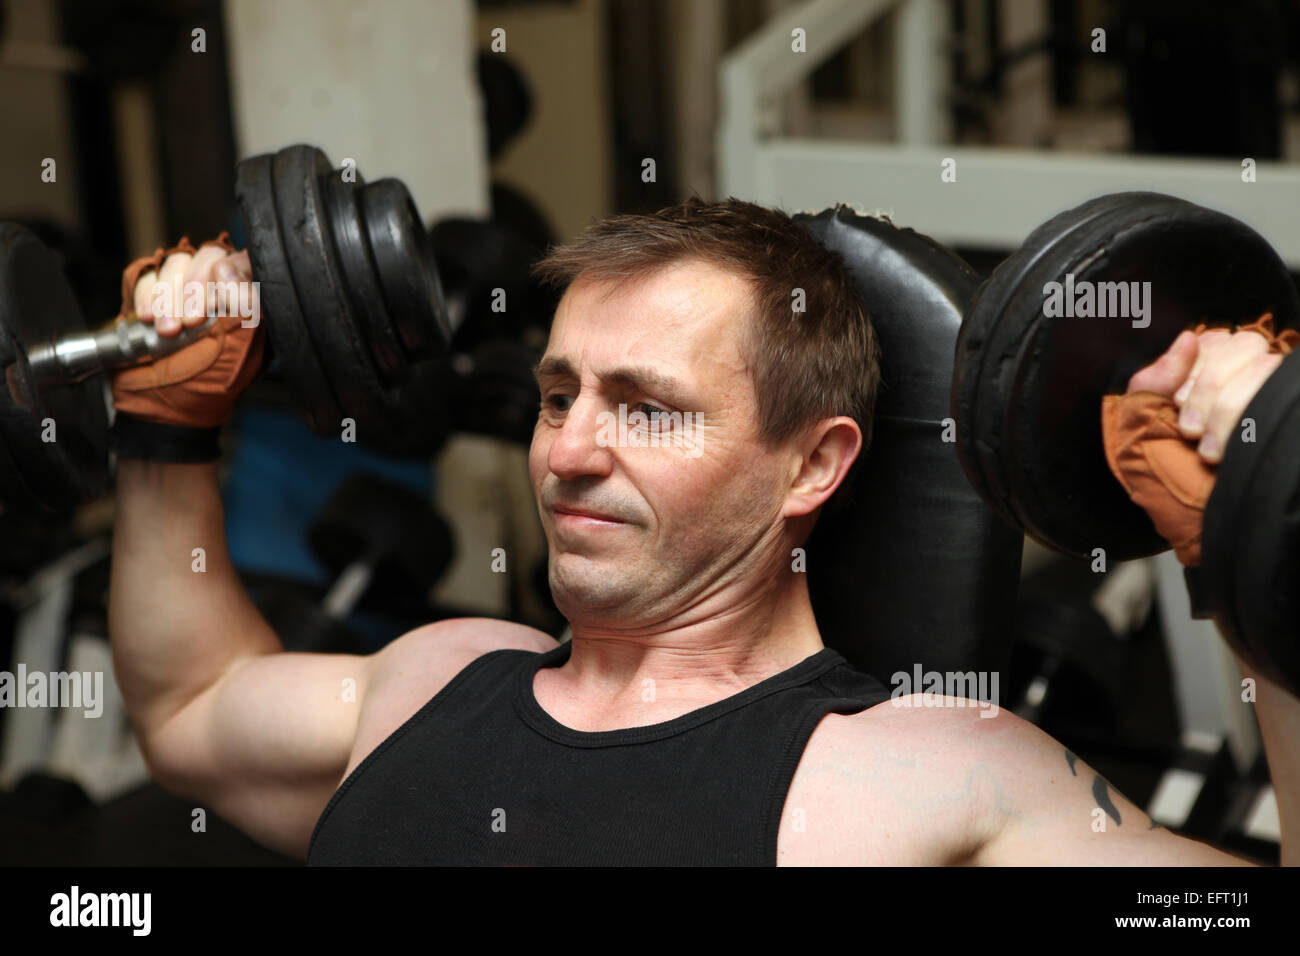 training dumbbells in gym  Male lifting weights for upper